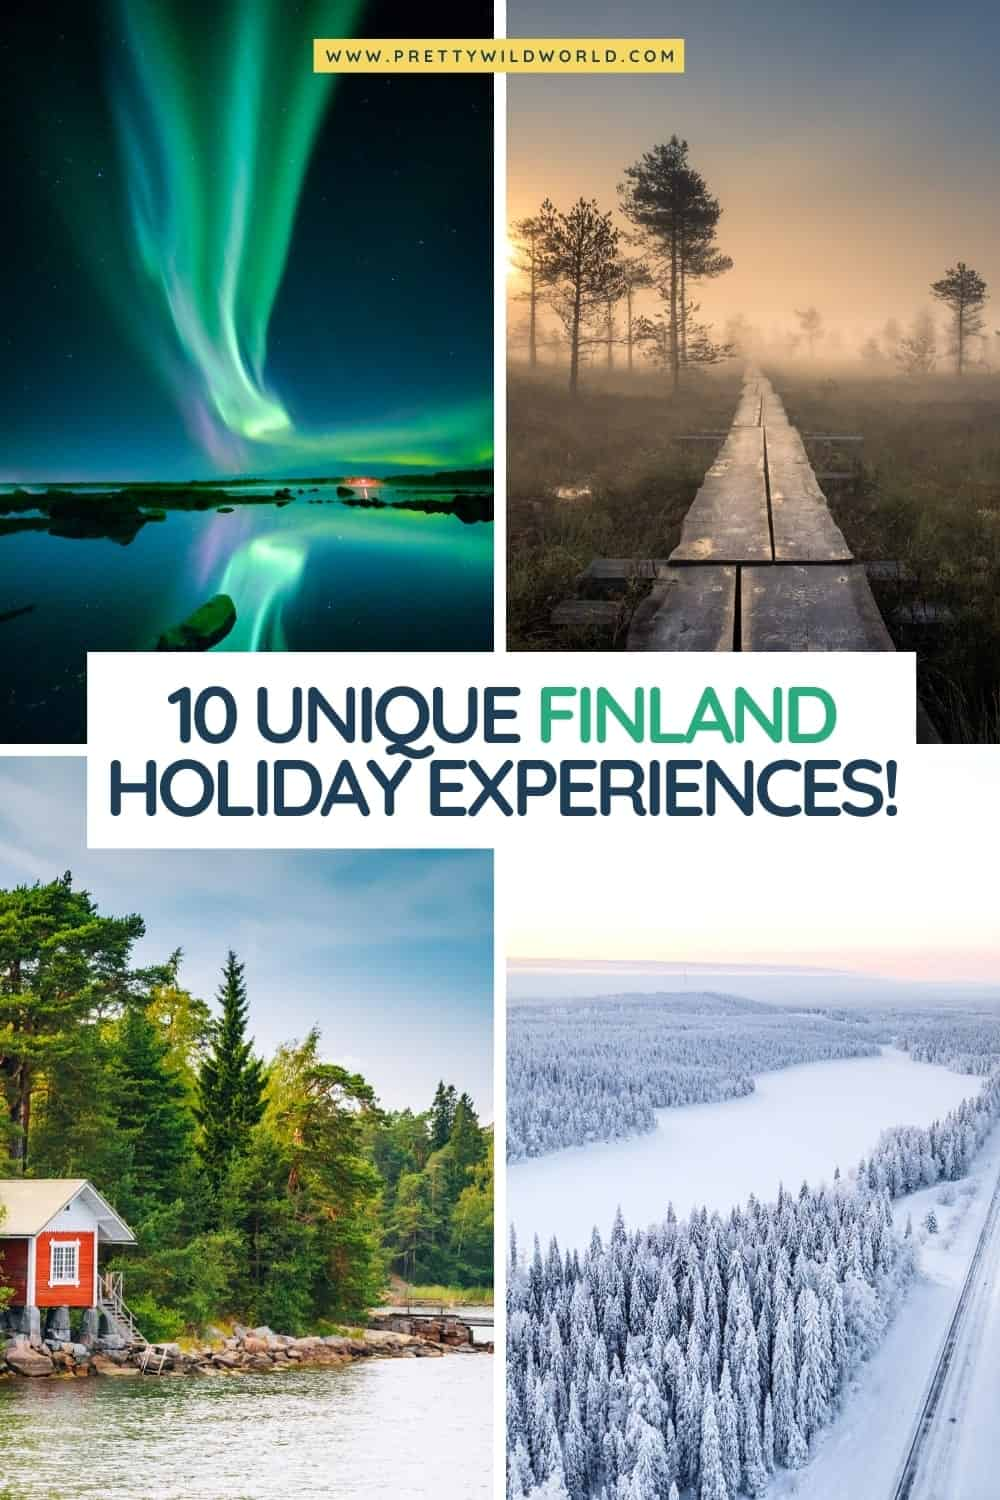 Don't miss the chance to experience the best Finland holidays during winter and summer. Here are the 10 best things to do in Finland for an awesome holiday. #travel #finland #europe #travelexperience